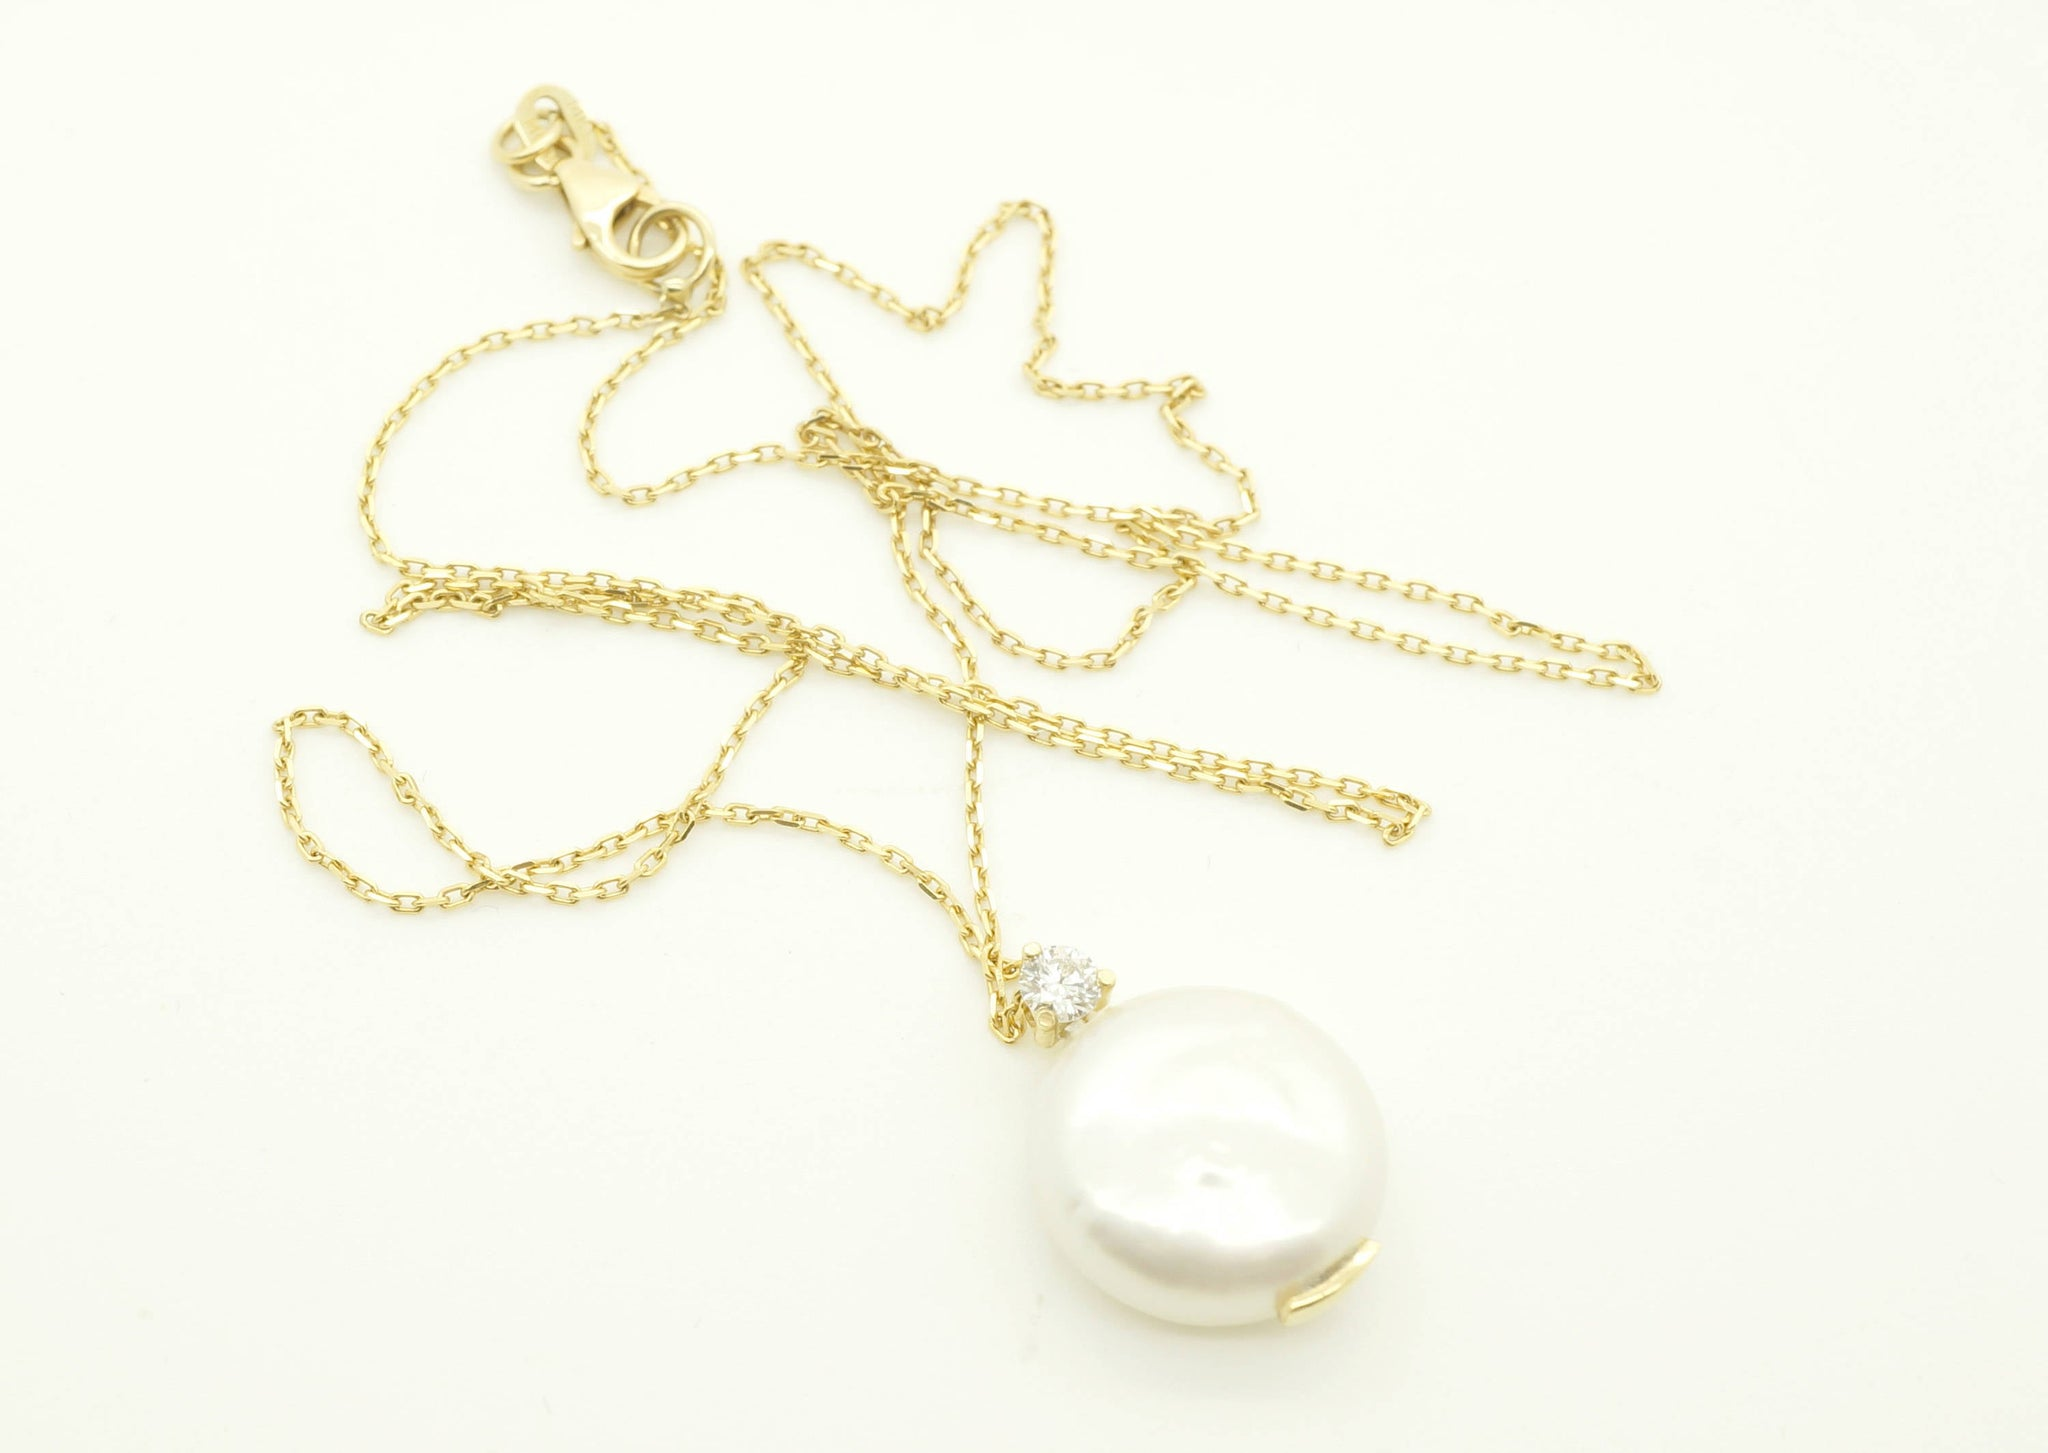 Art deco pearl pendant-Freshwater pearl pendant-Bridal necklace pearls-Pearl necklace-Diamond & Pearl